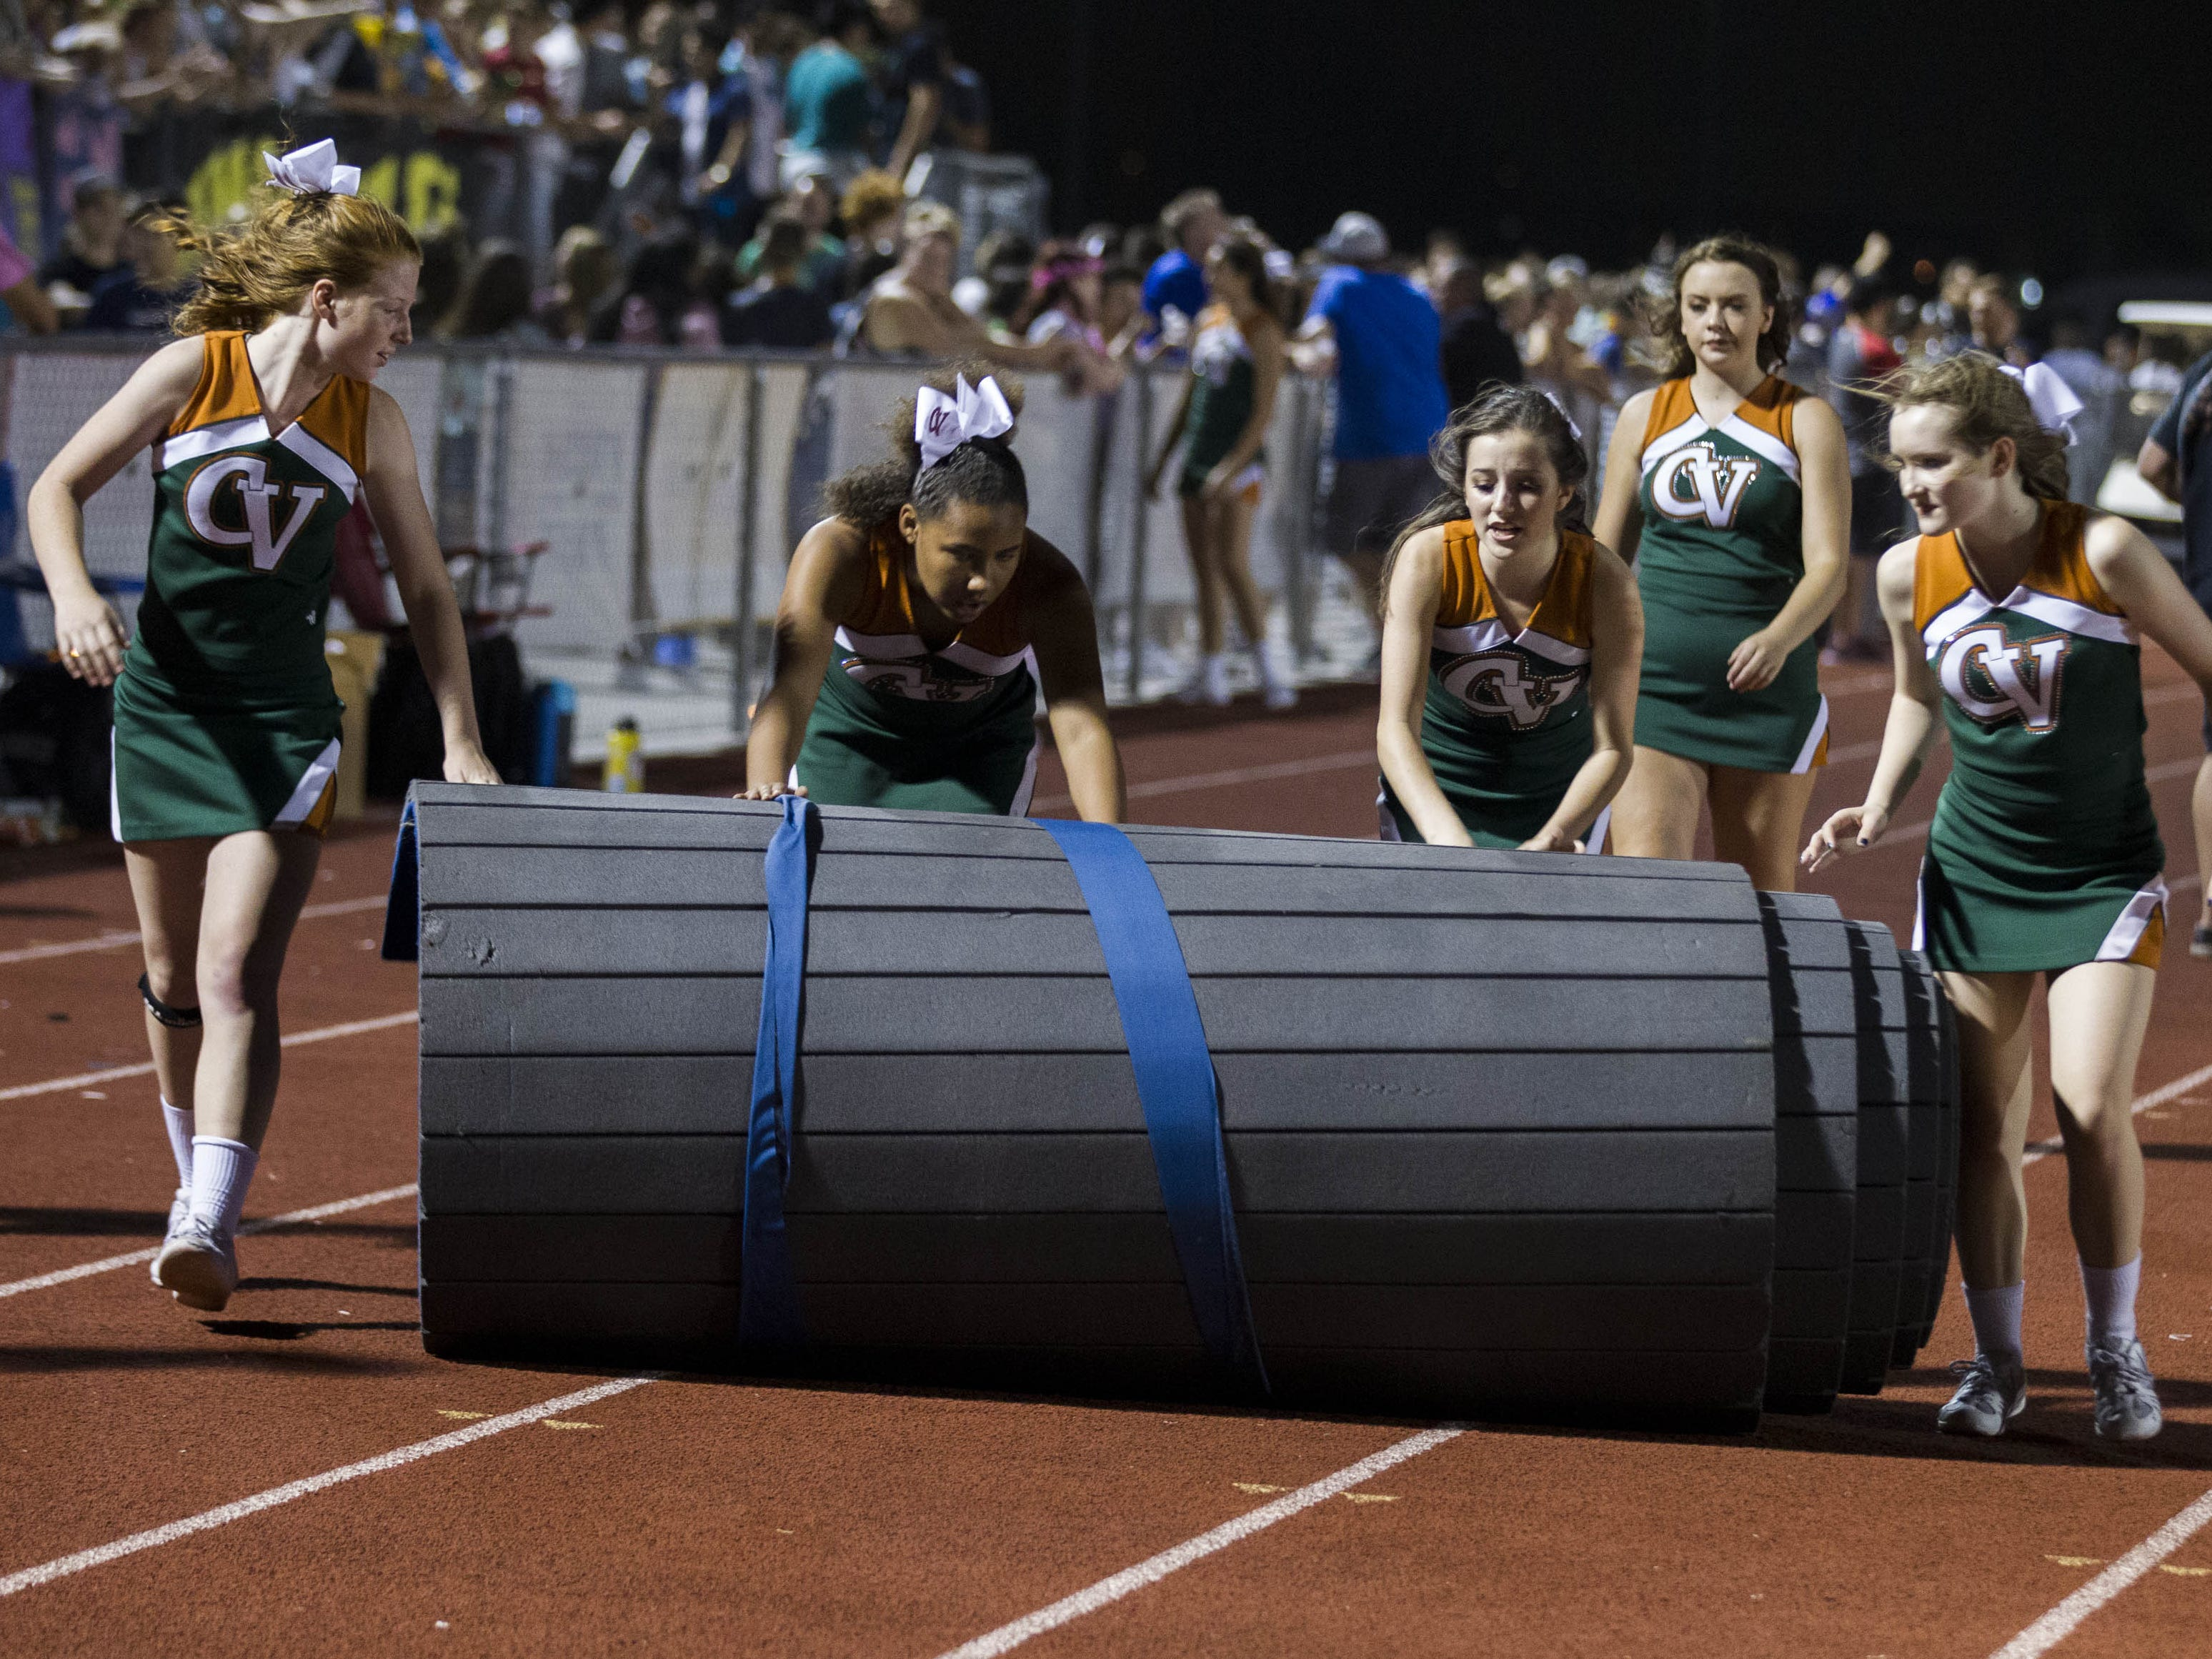 Campo Verde High cheerleaders roll up a mat during halftime after their game with Mesquite was in a weather delay in Gilbert Friday, Aug. 24, 2018. Campo Verde was up 22-7 at halftime. #azhsfb